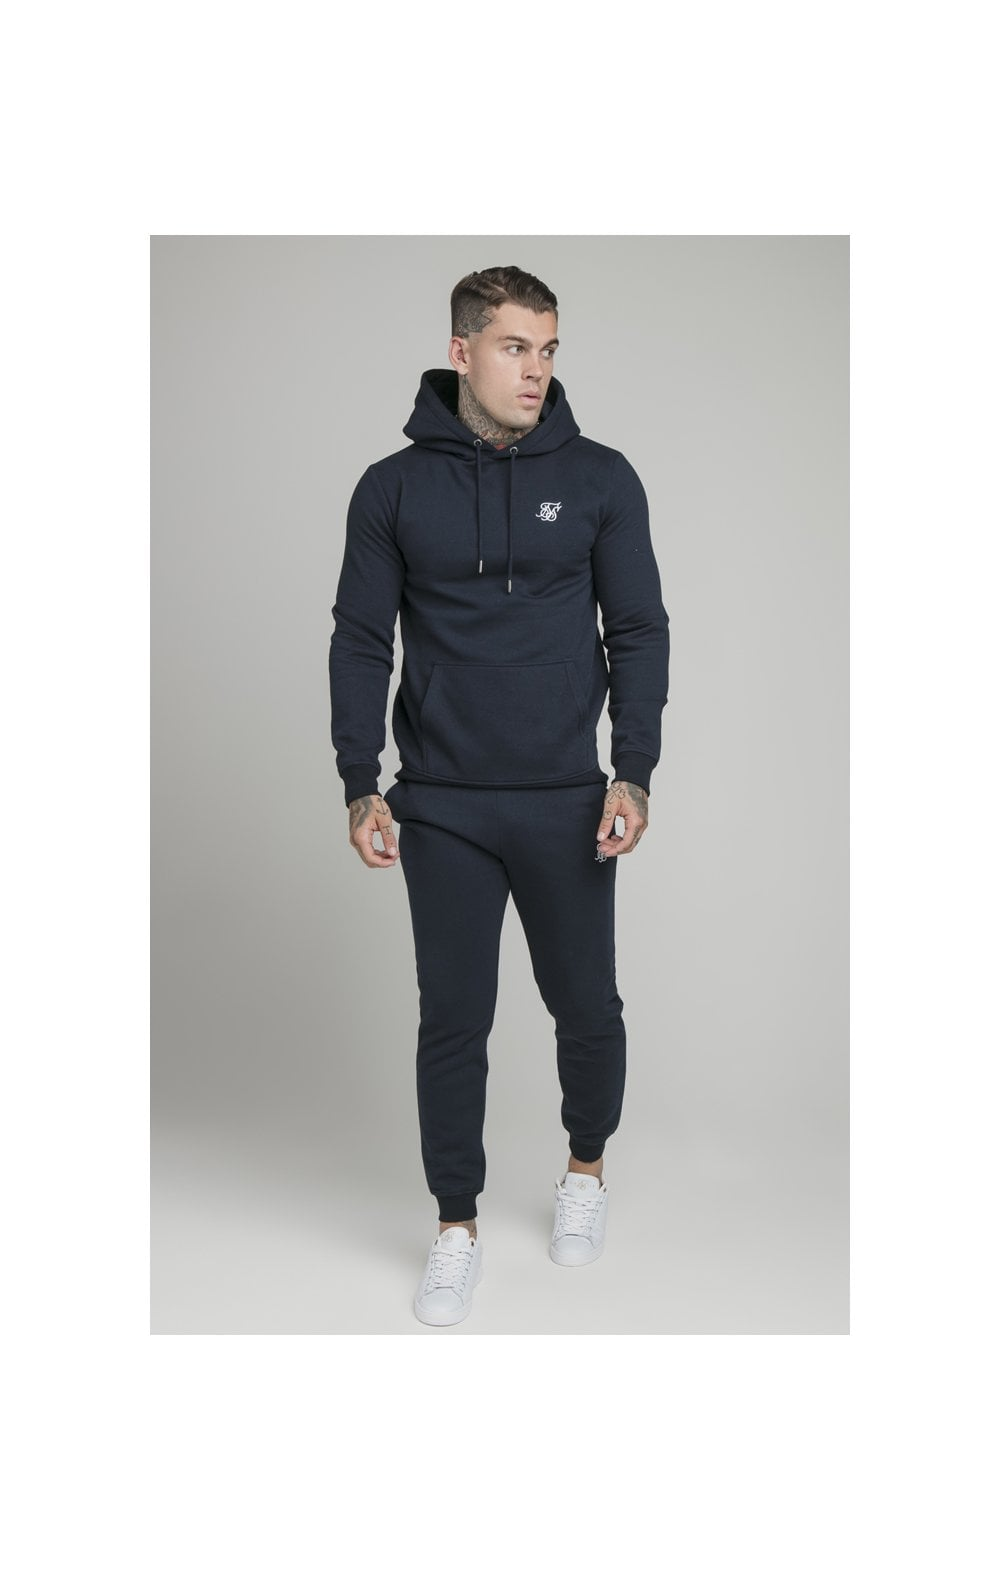 Load image into Gallery viewer, SikSilk Muscle Fit Overhead Hoodie - Navy (4)